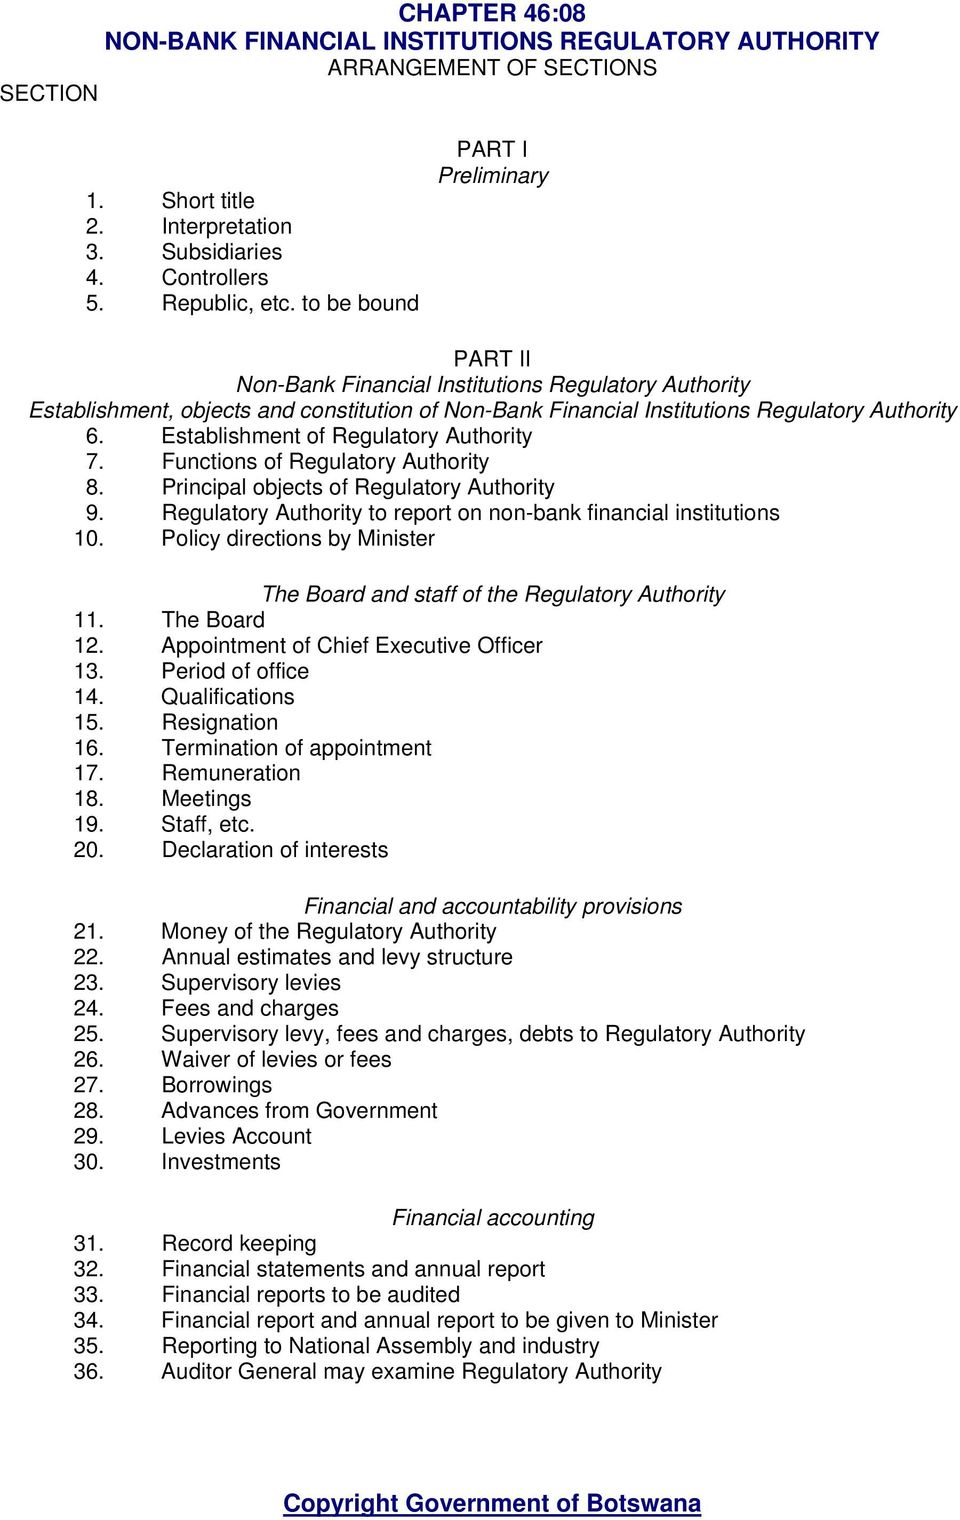 Establishment of Regulatory Authority 7. Functions of Regulatory Authority 8. Principal objects of Regulatory Authority 9. Regulatory Authority to report on non-bank financial institutions 10.